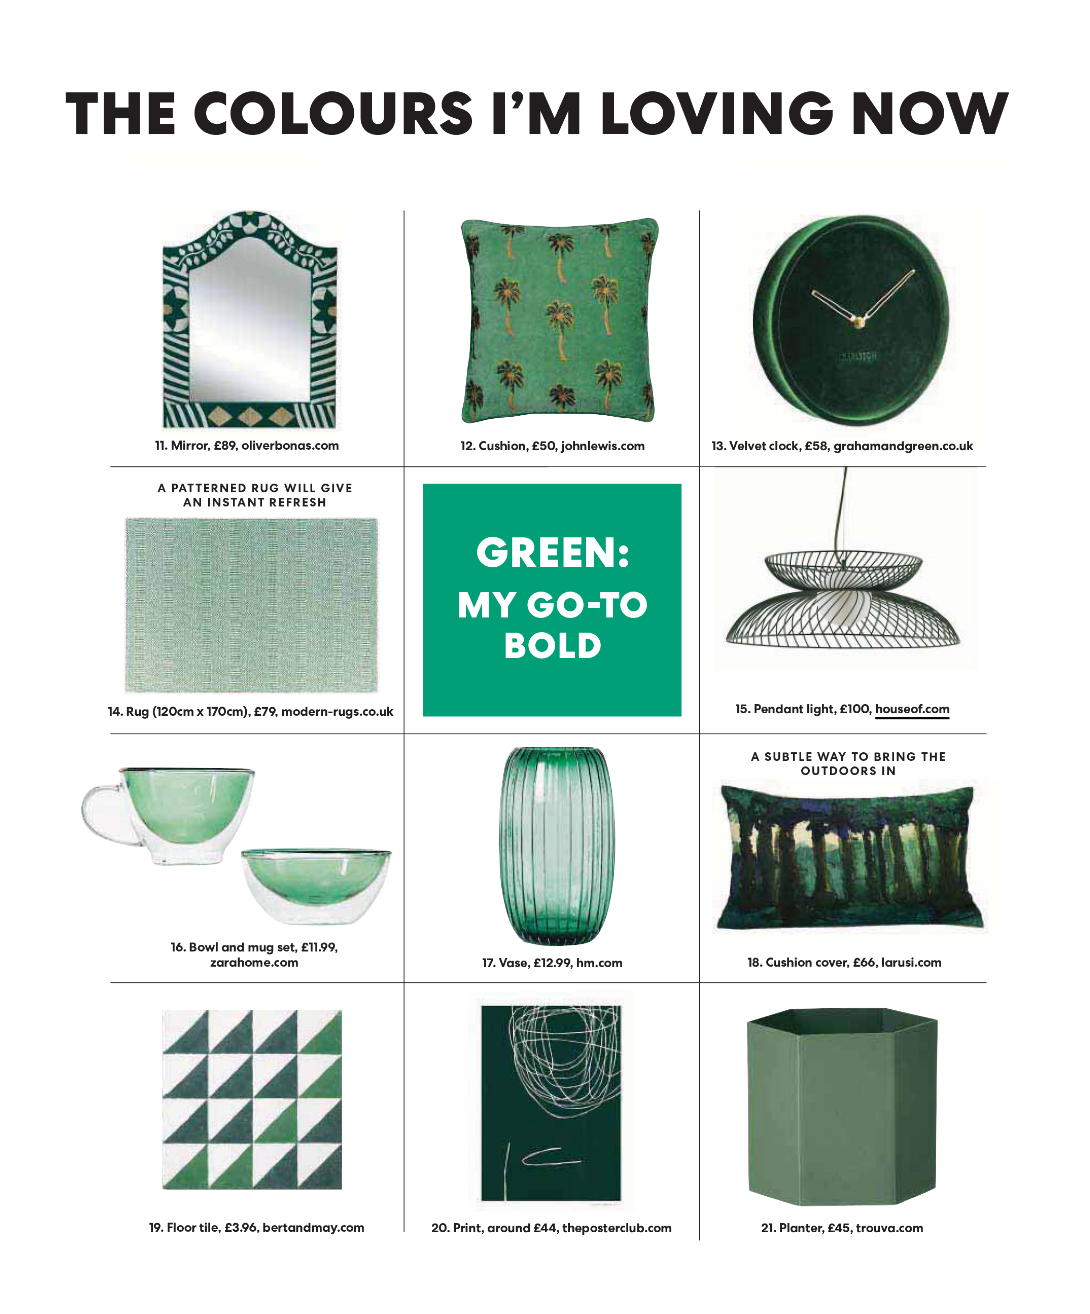 houseof-press-img-0719-themailonsunday-go-to-green-cage-ceiling-light-olive